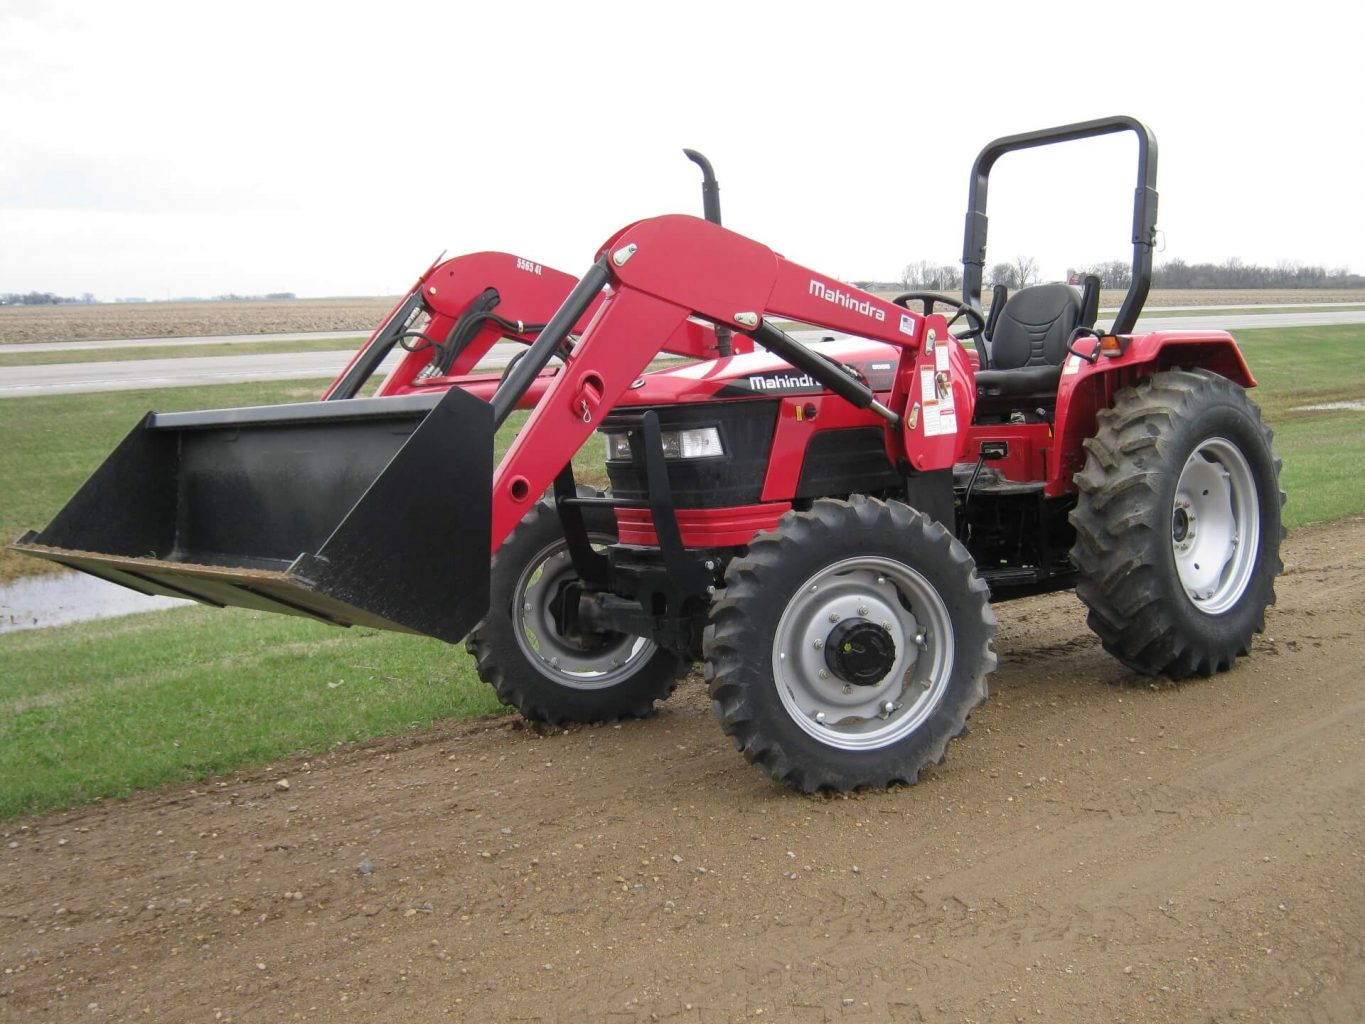 4110 Mahindra Tractorstarter Tractor Daedong Kioti Engine Diagram Usa All Utility Tractors Prices Specs Main Features